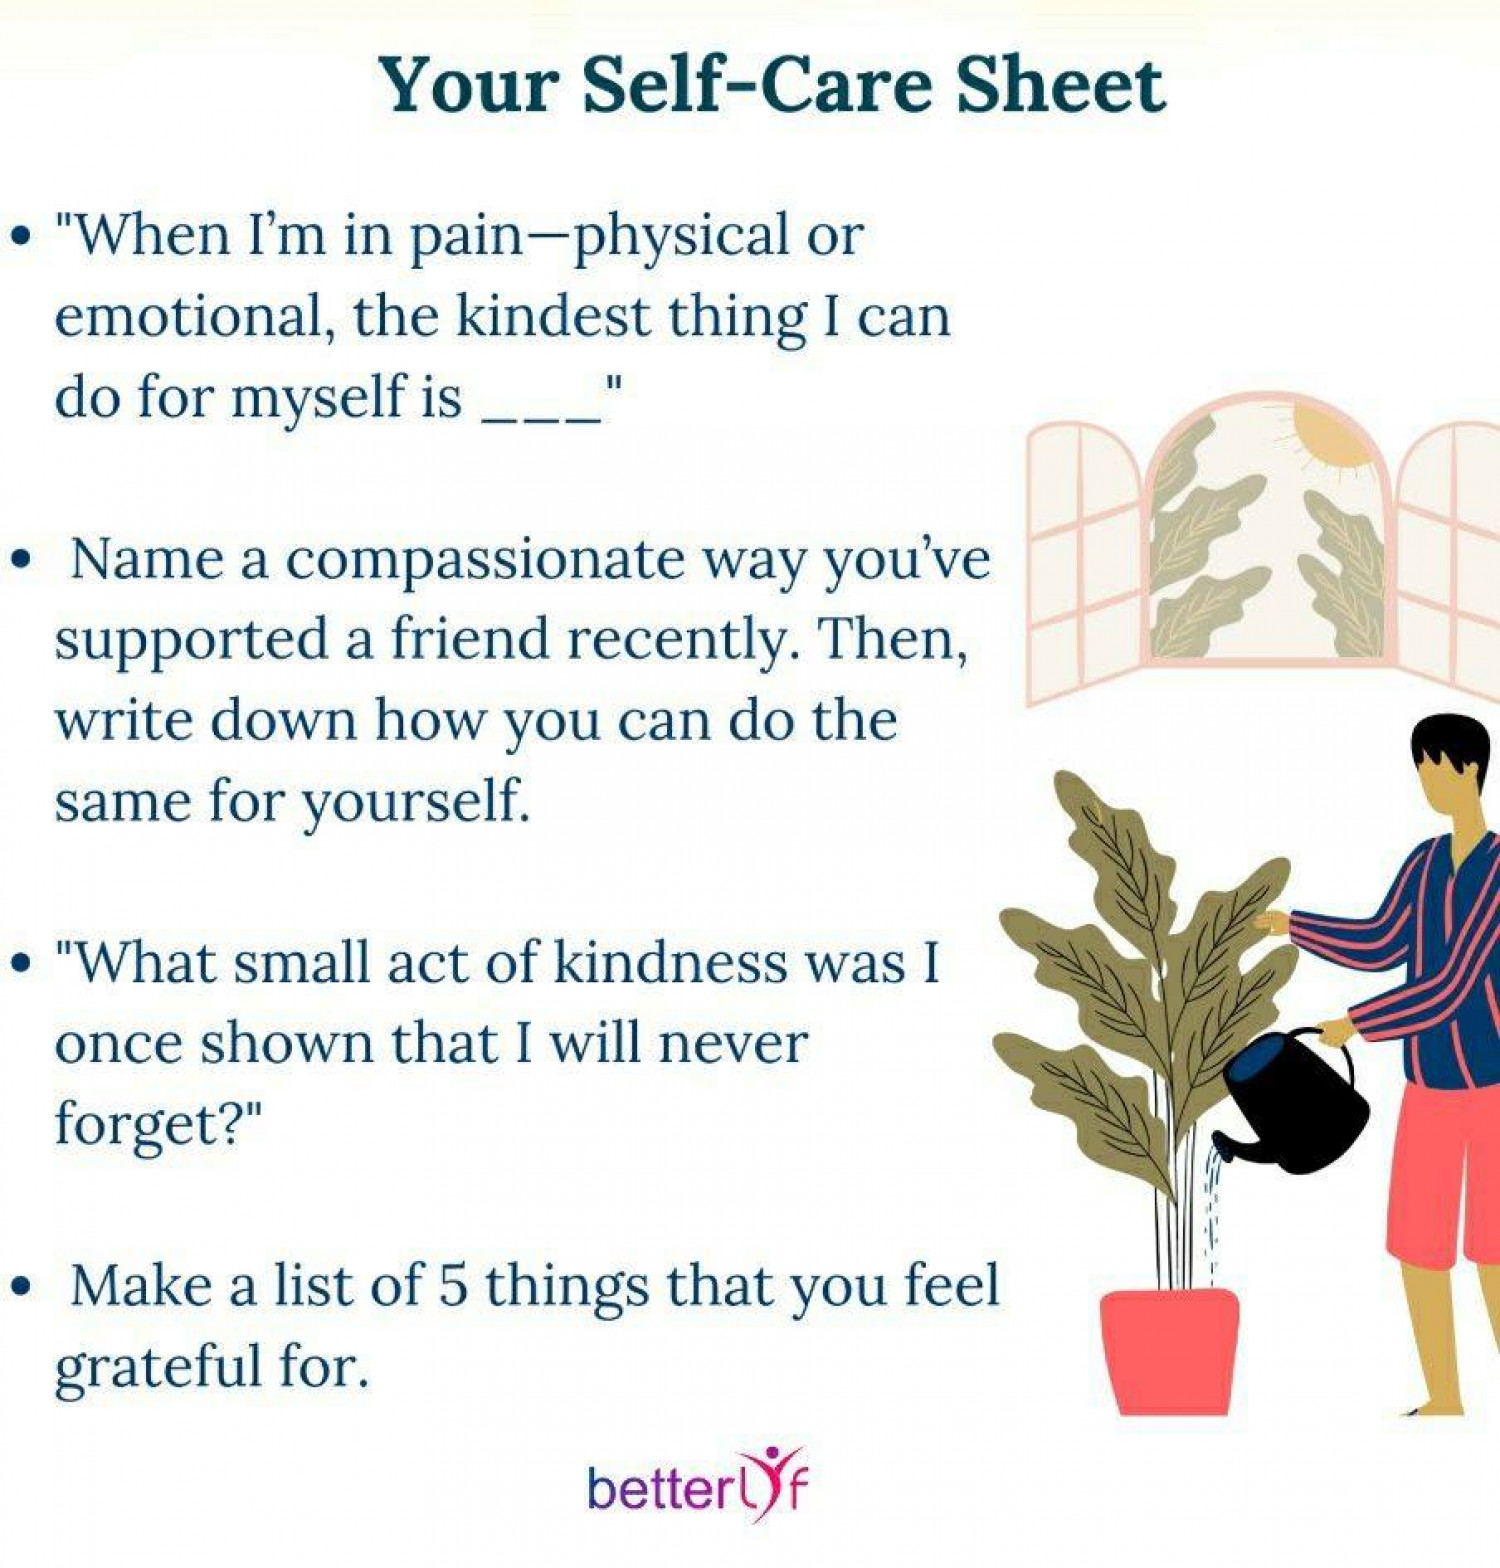 Your Self-Care Sheet Infographic